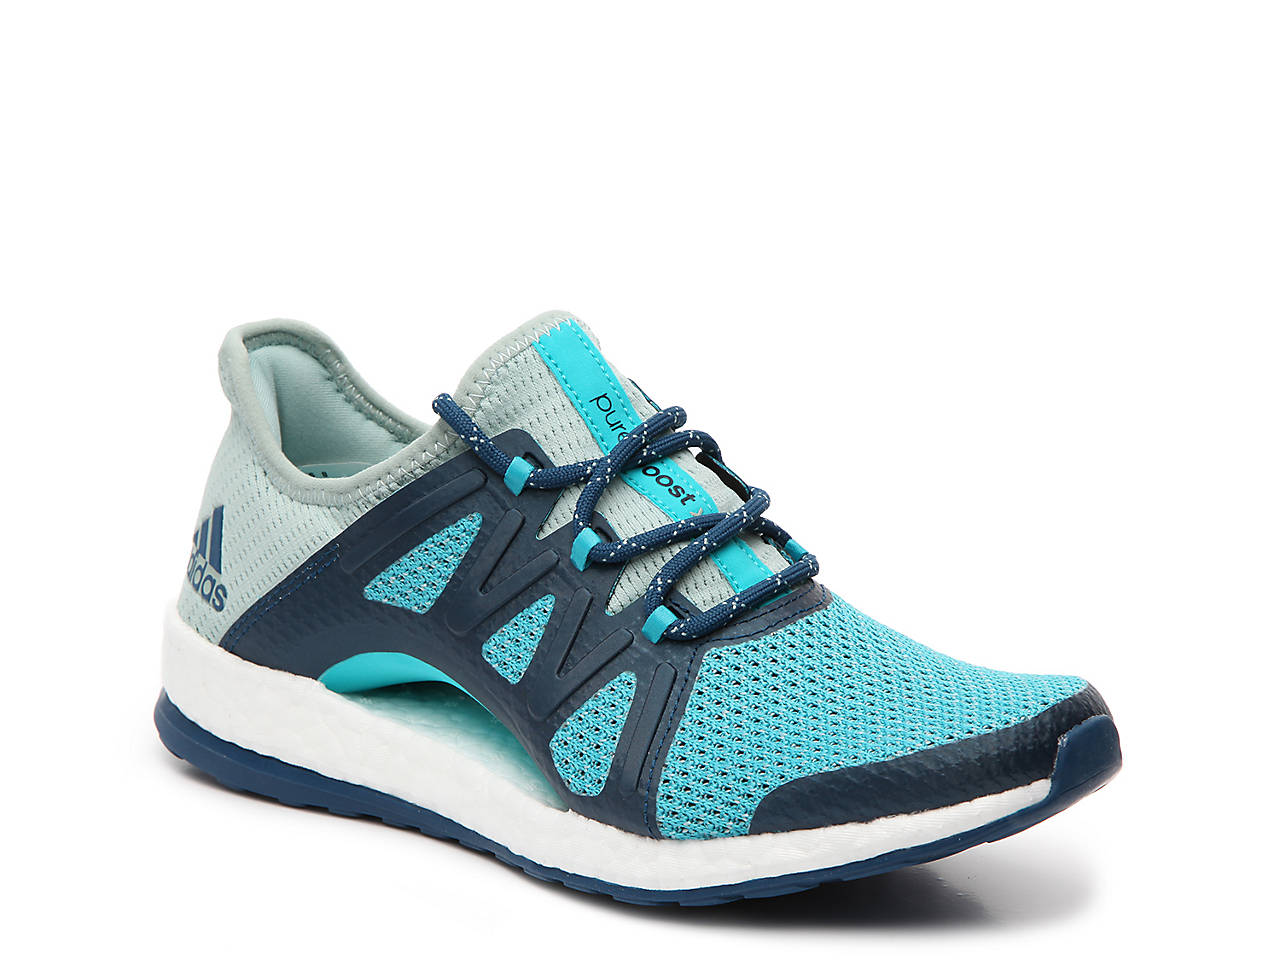 on sale c733e a4919 adidas. Pureboost Xpose Performance Running Shoe - Women s